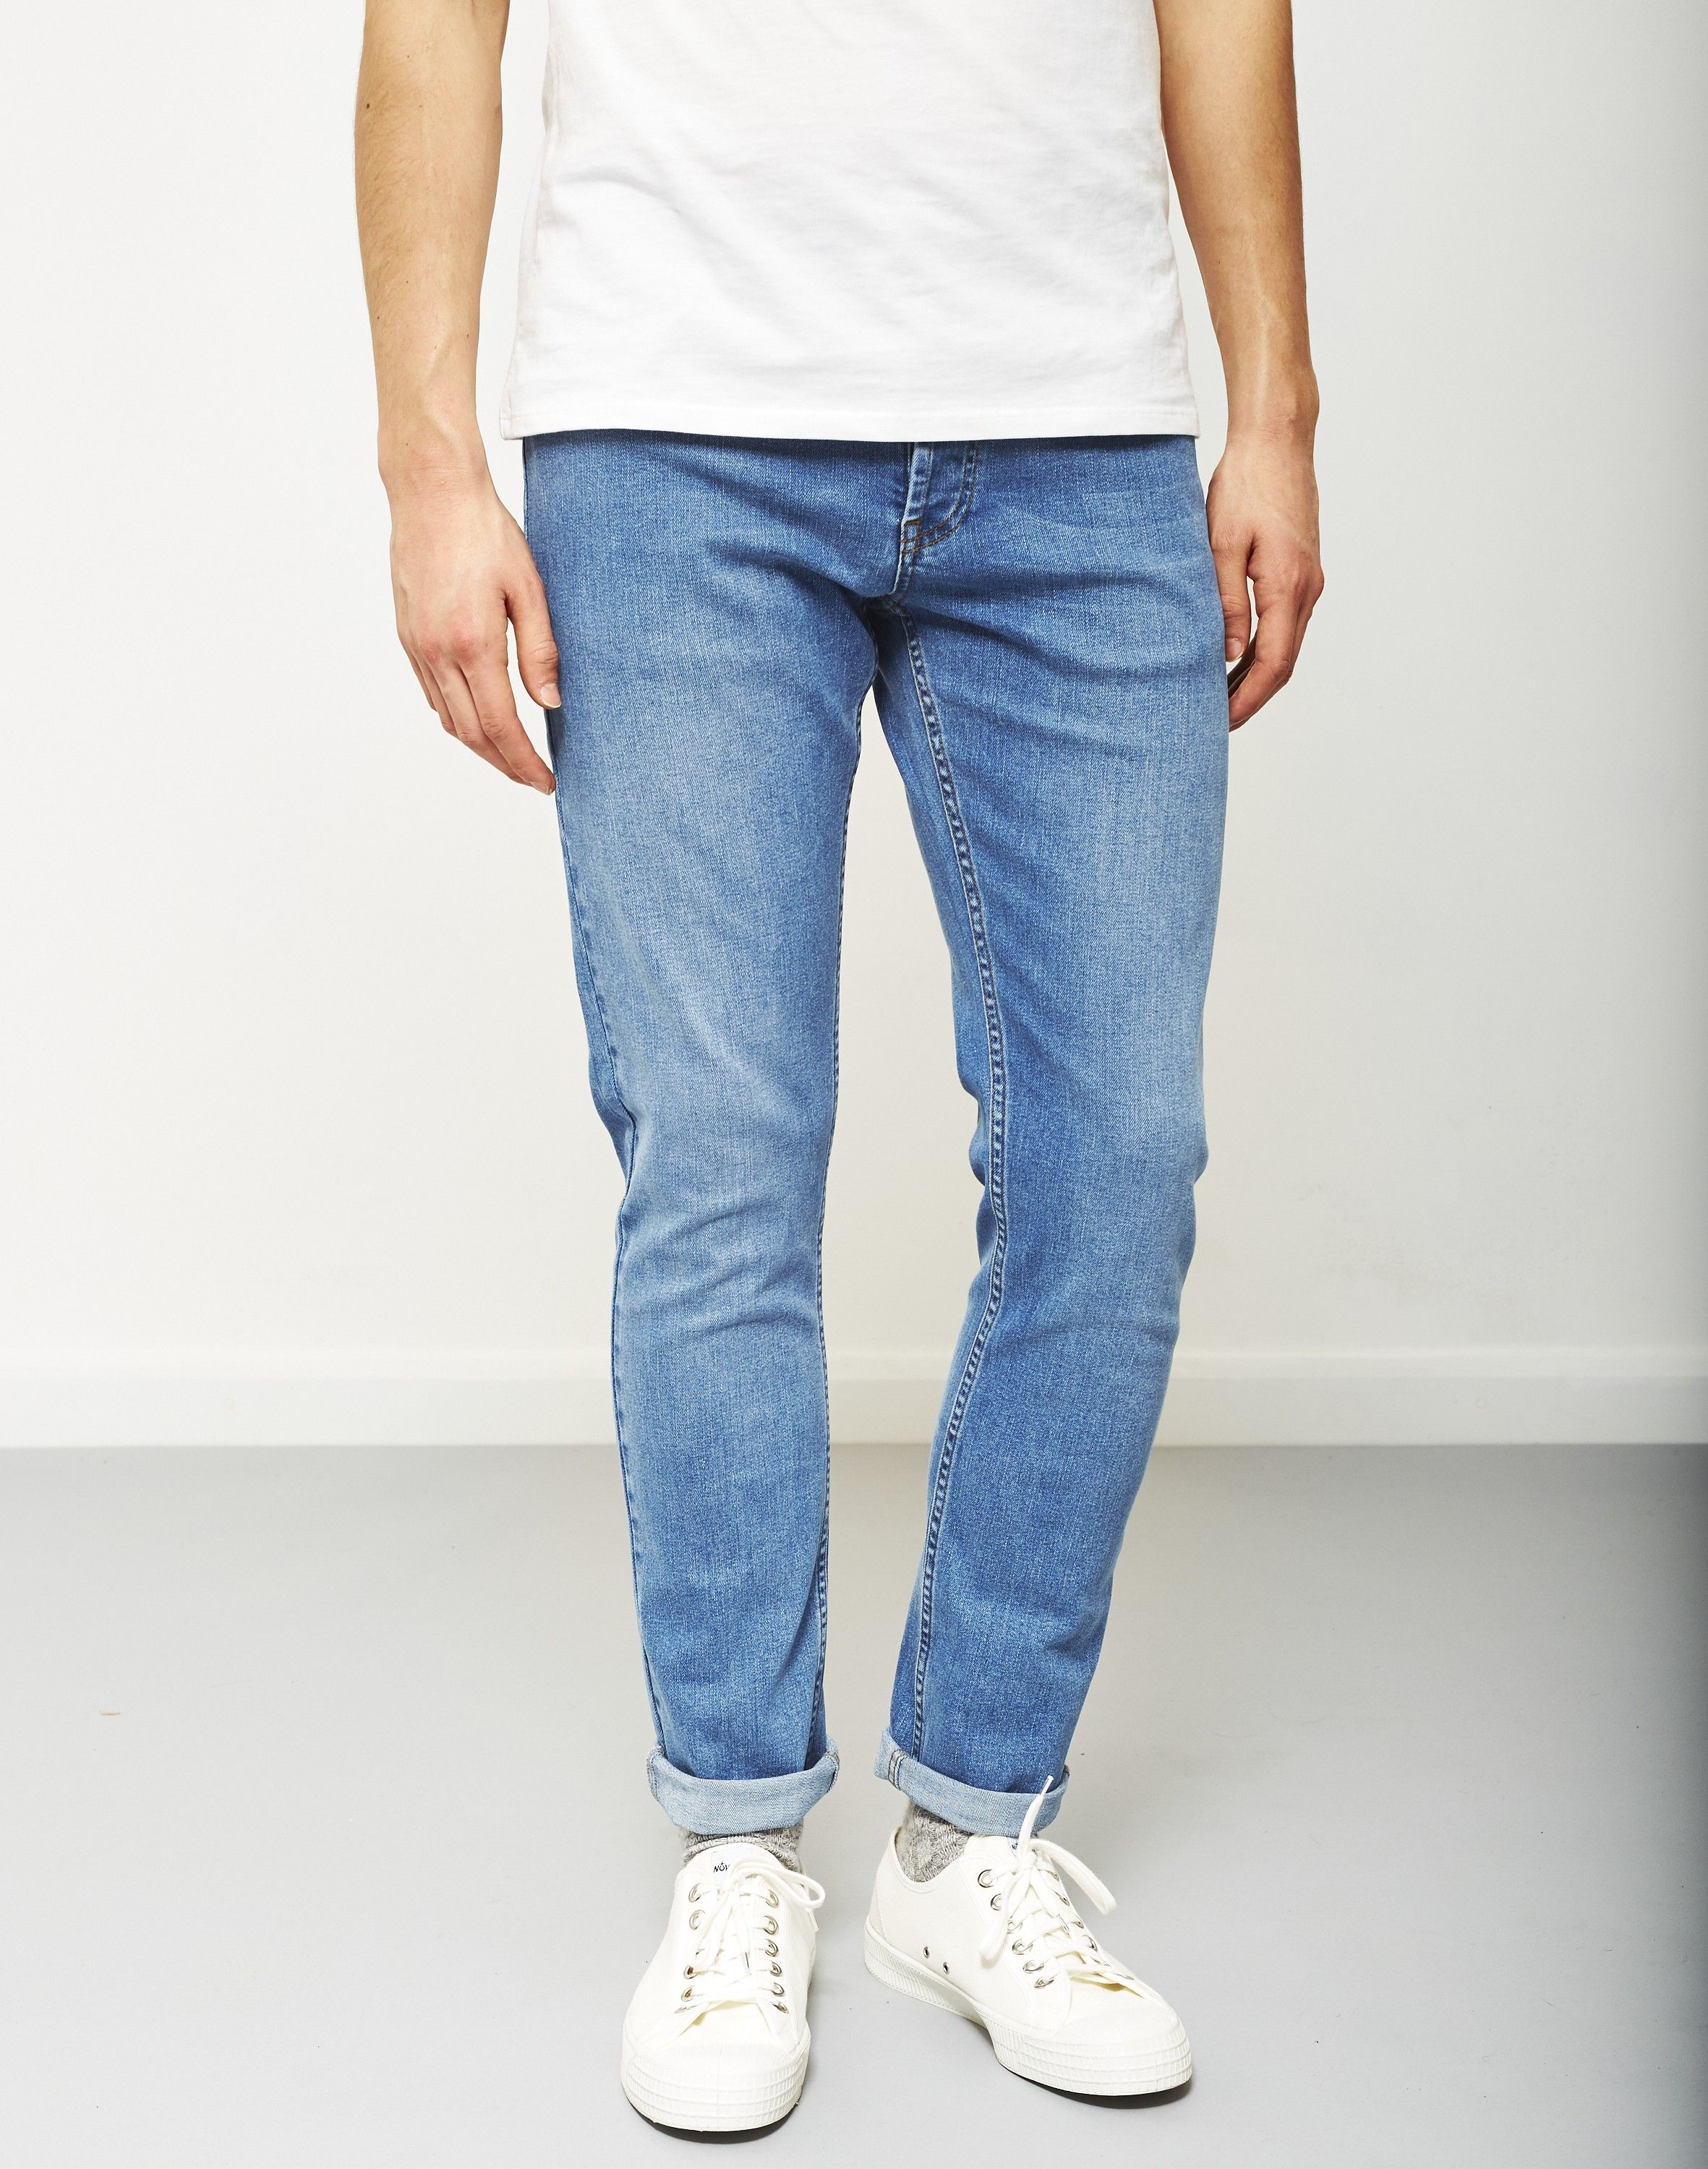 Fit Jeans 2019JeansBest Wash Stone Slim In 8knP0wOX